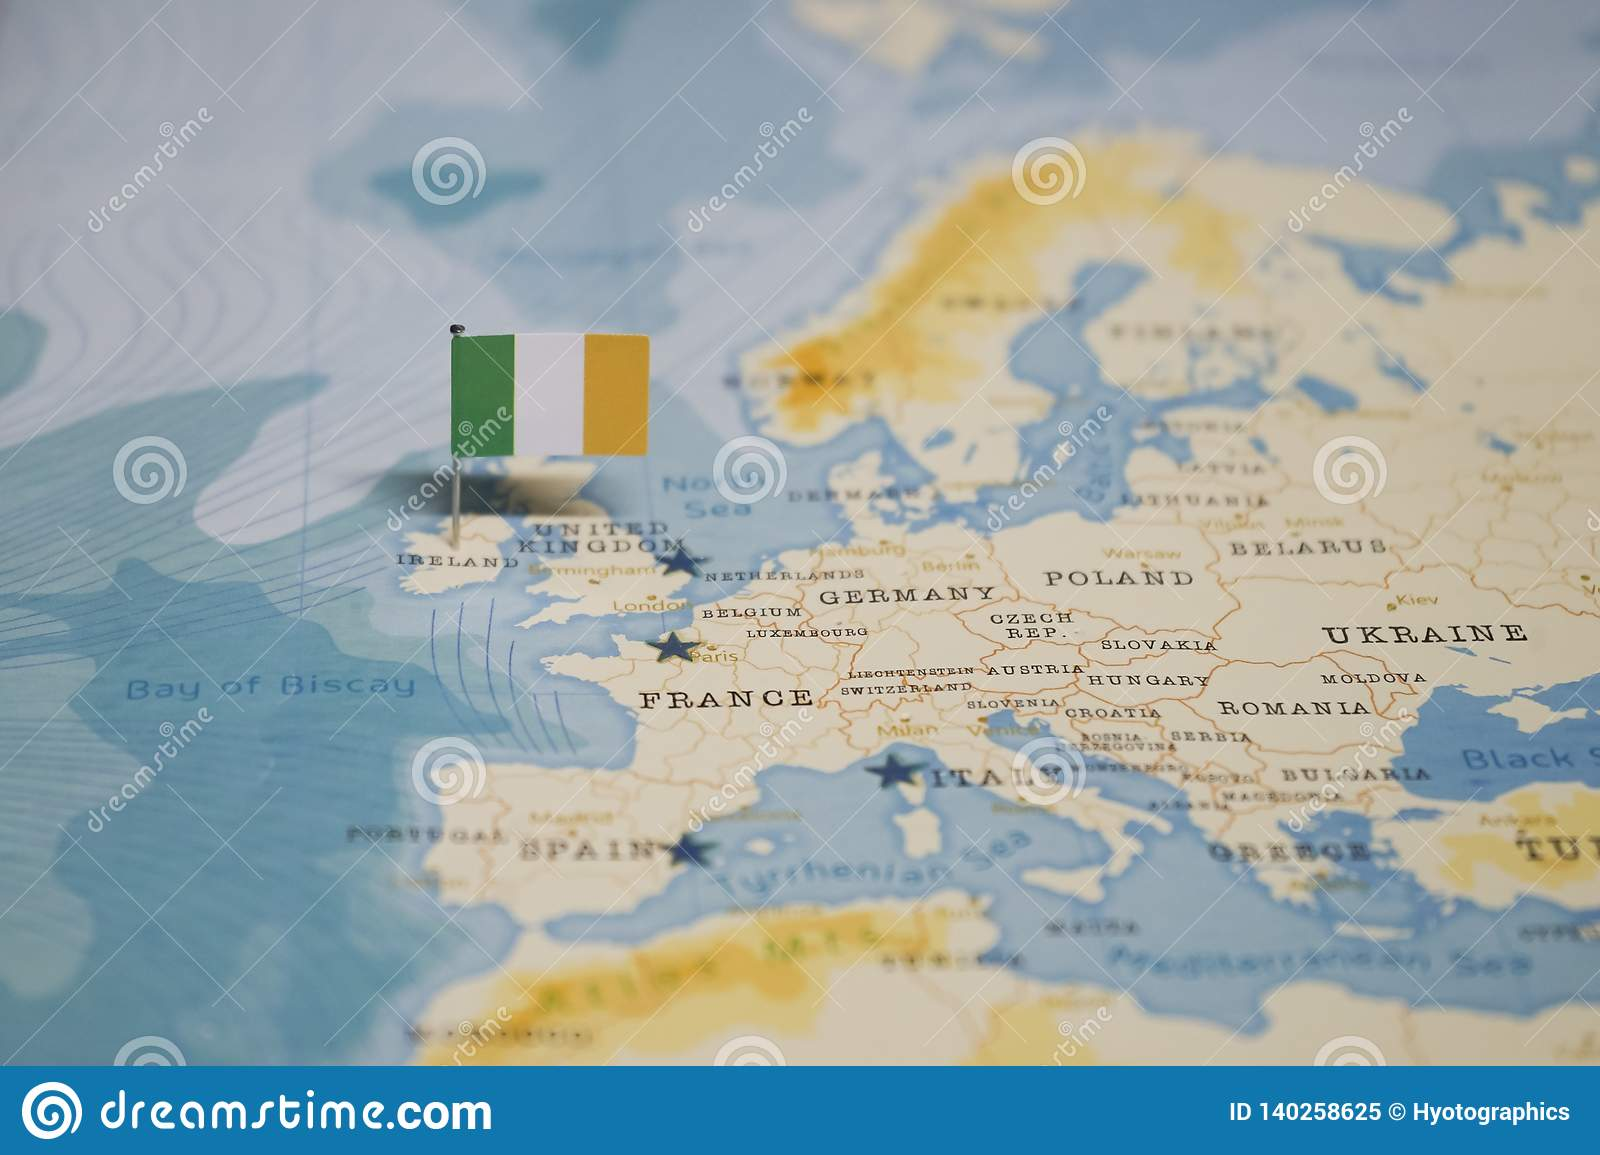 The Flag Of Ireland In The World Map Stock Image - Image of ...